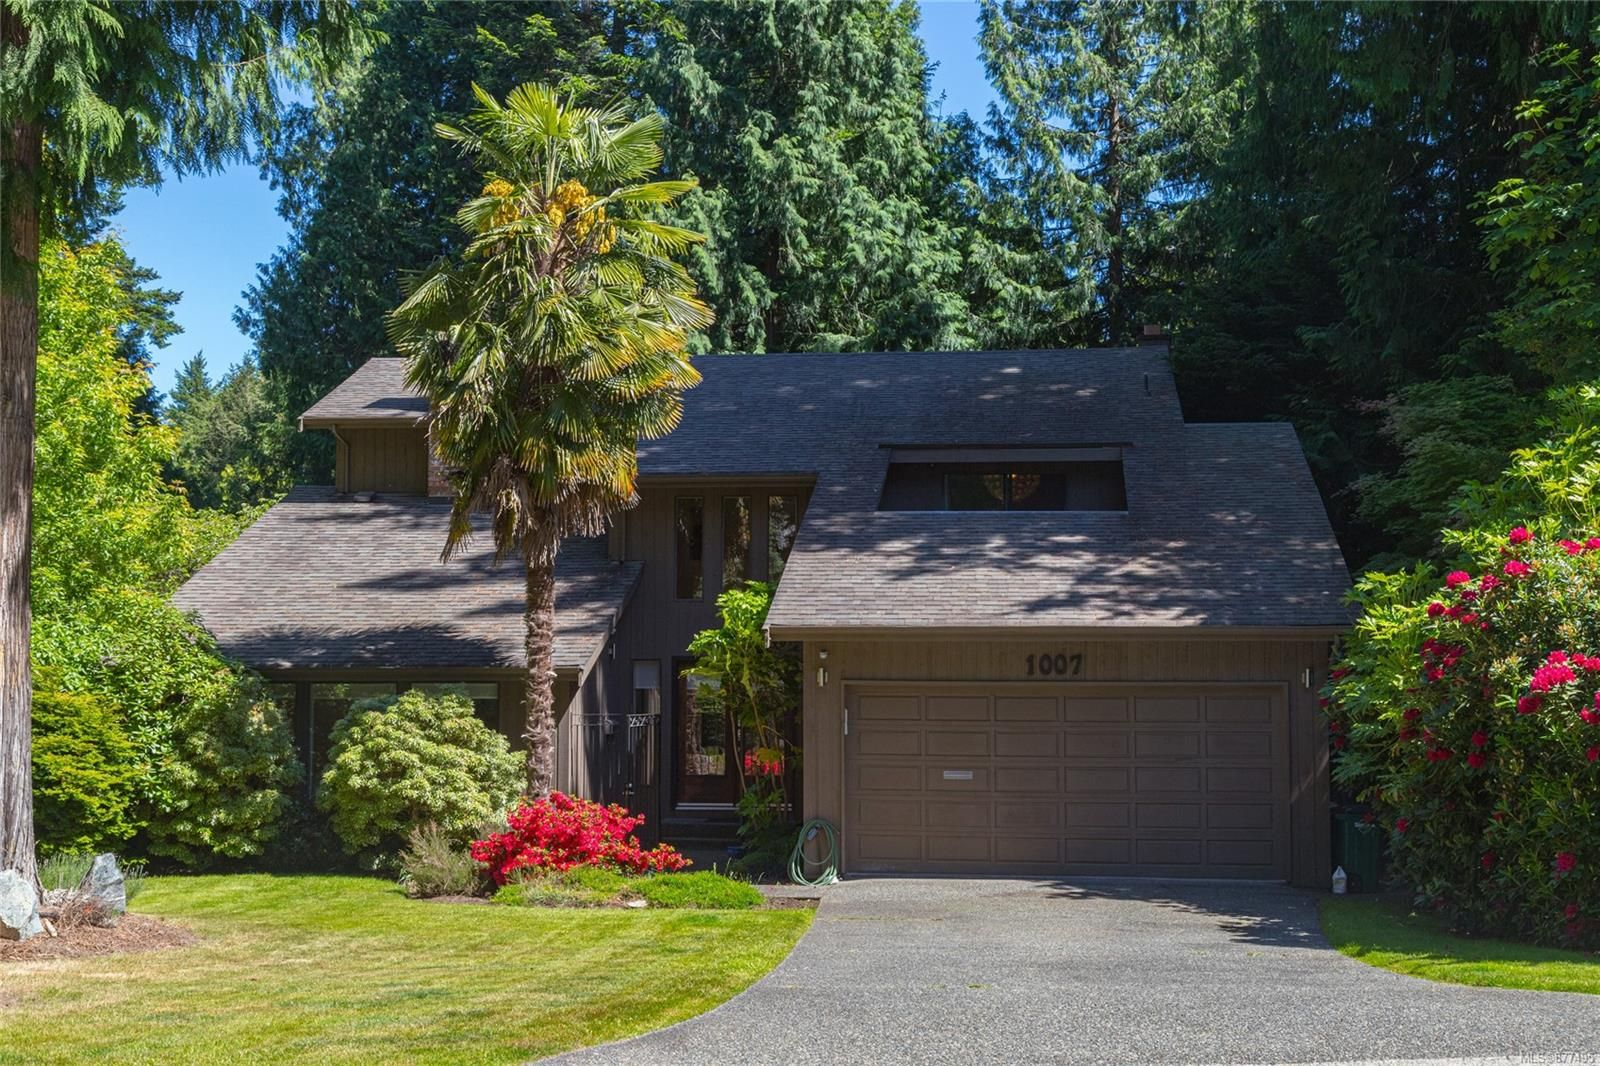 Main Photo: 1007 Kentwood Pl in : SE Broadmead House for sale (Saanich East)  : MLS®# 877495